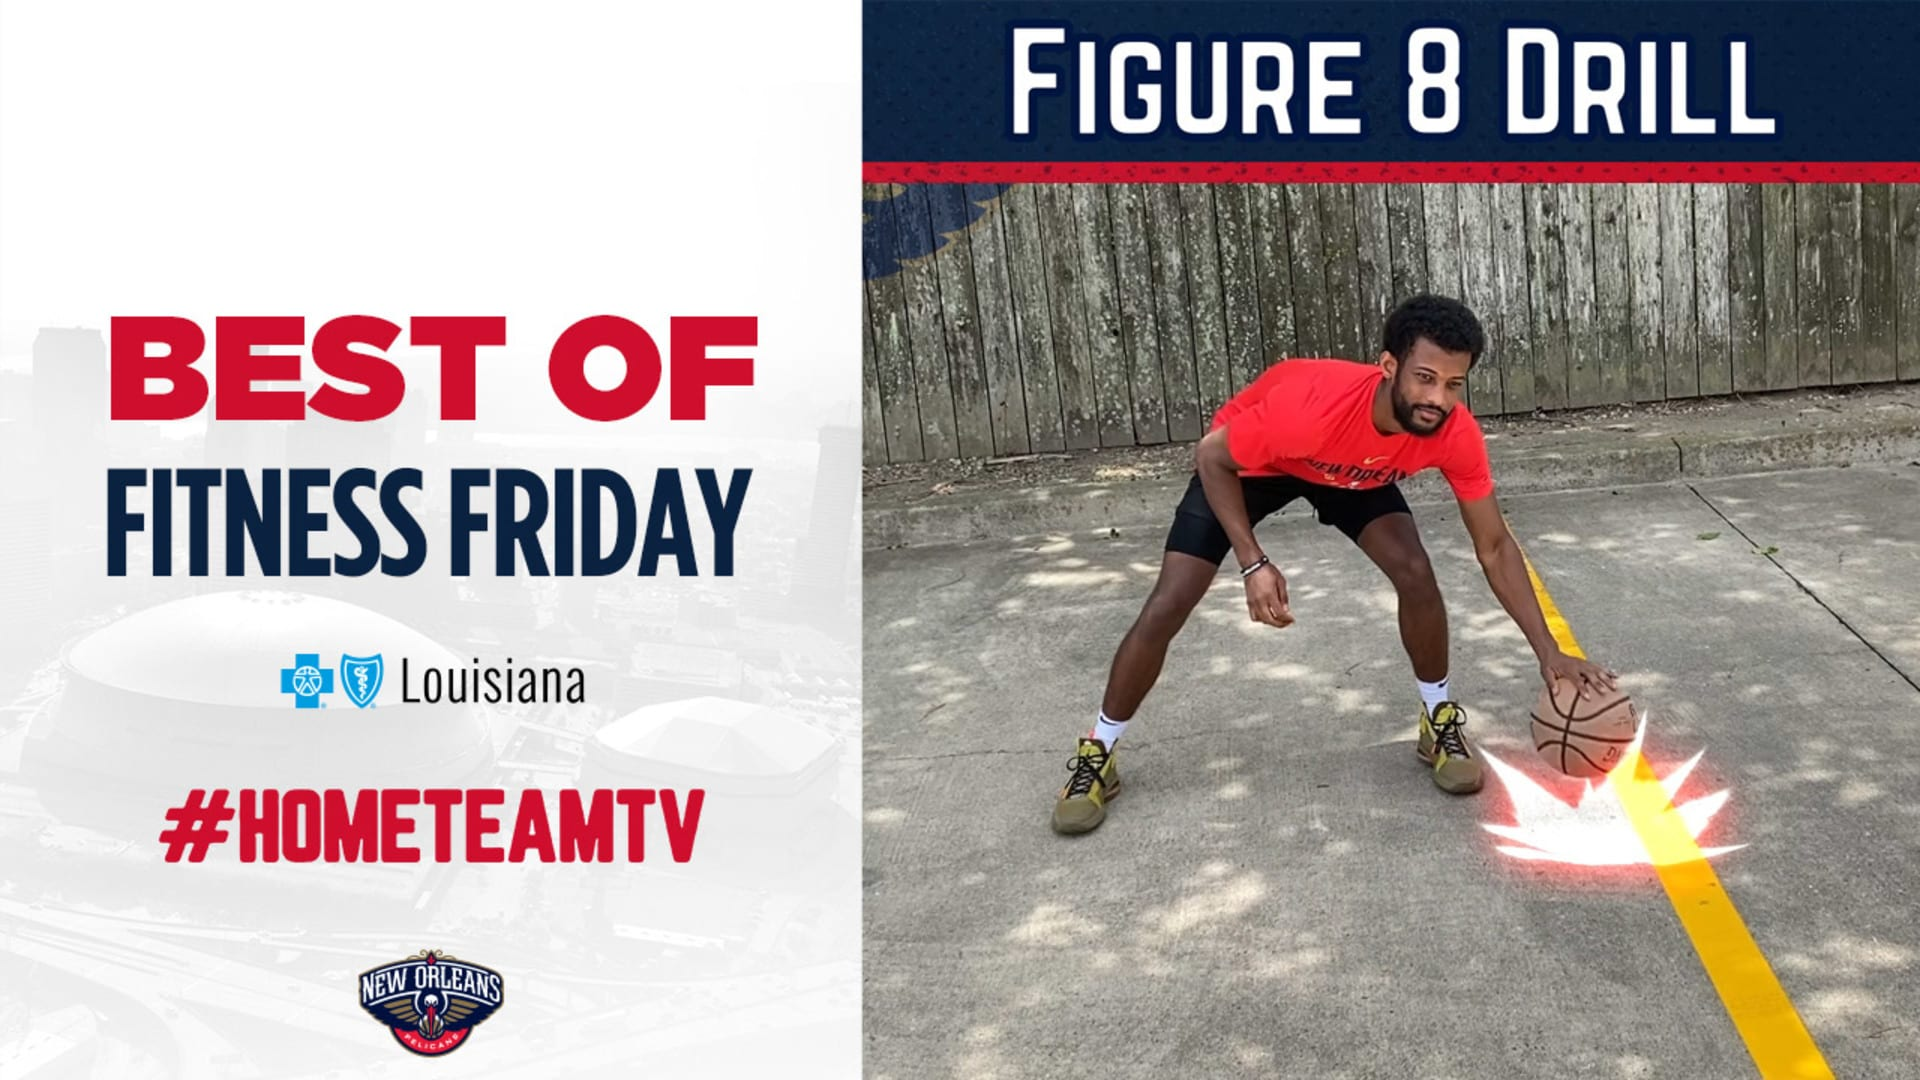 HomeTeamTV: The Best of Fitness Friday